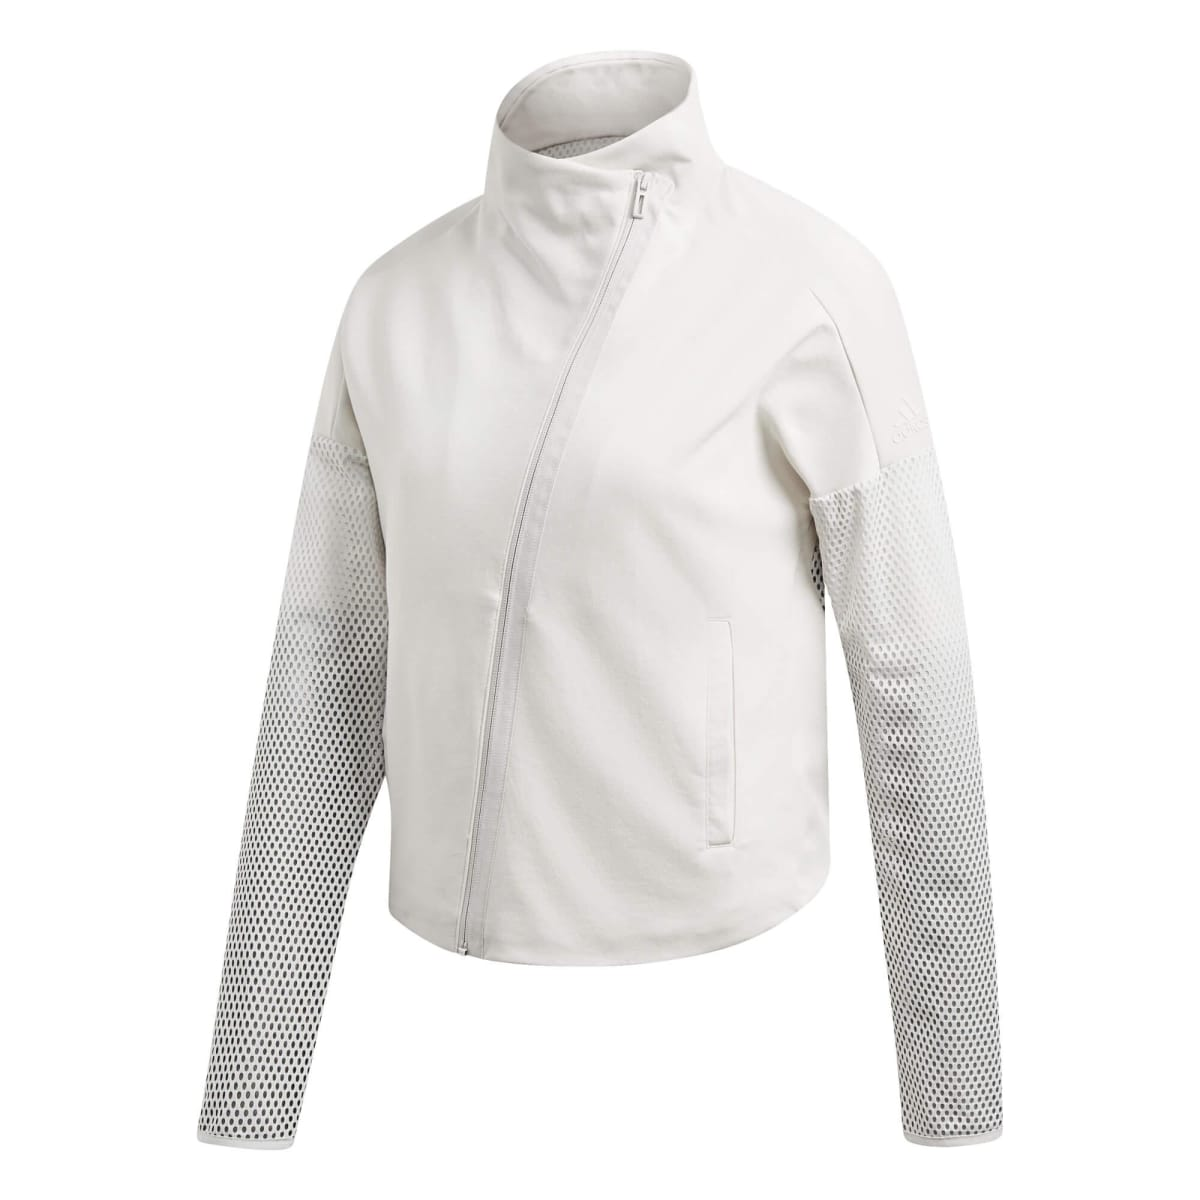 3df3c5661e9050 Product Image. Adidas Women s Heartracer Jacket